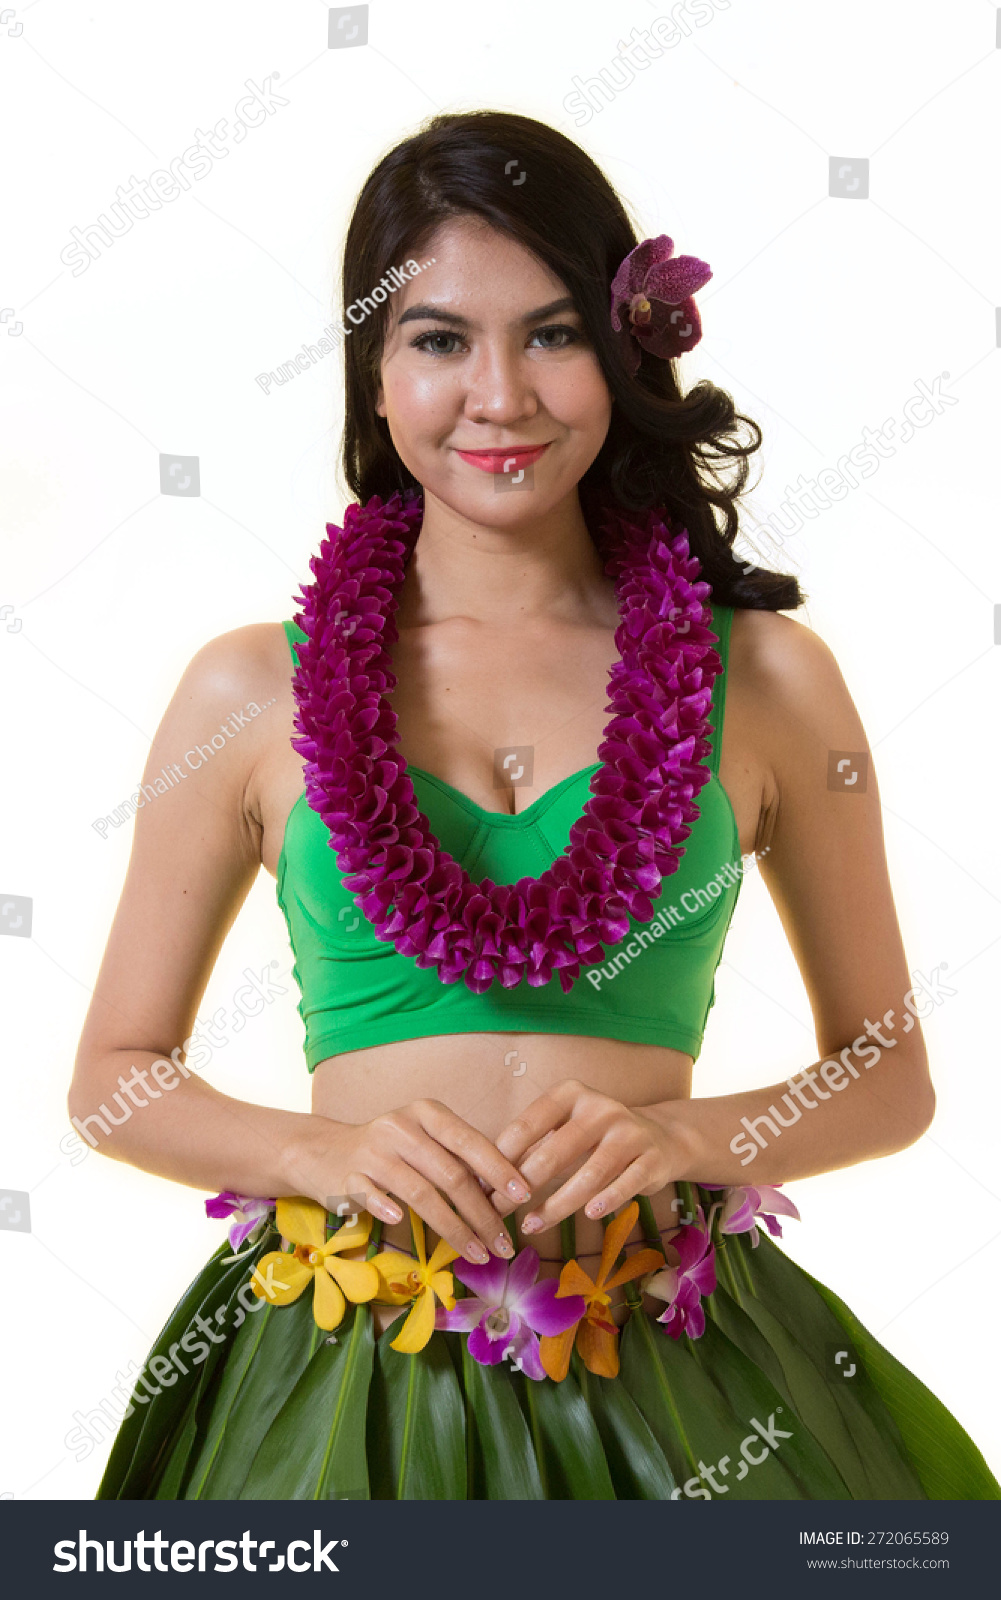 Beautiful woman dress hawaiian style flower stock photo edit now beautiful woman dress in hawaiian style with flower lei garland of orchids on white background izmirmasajfo